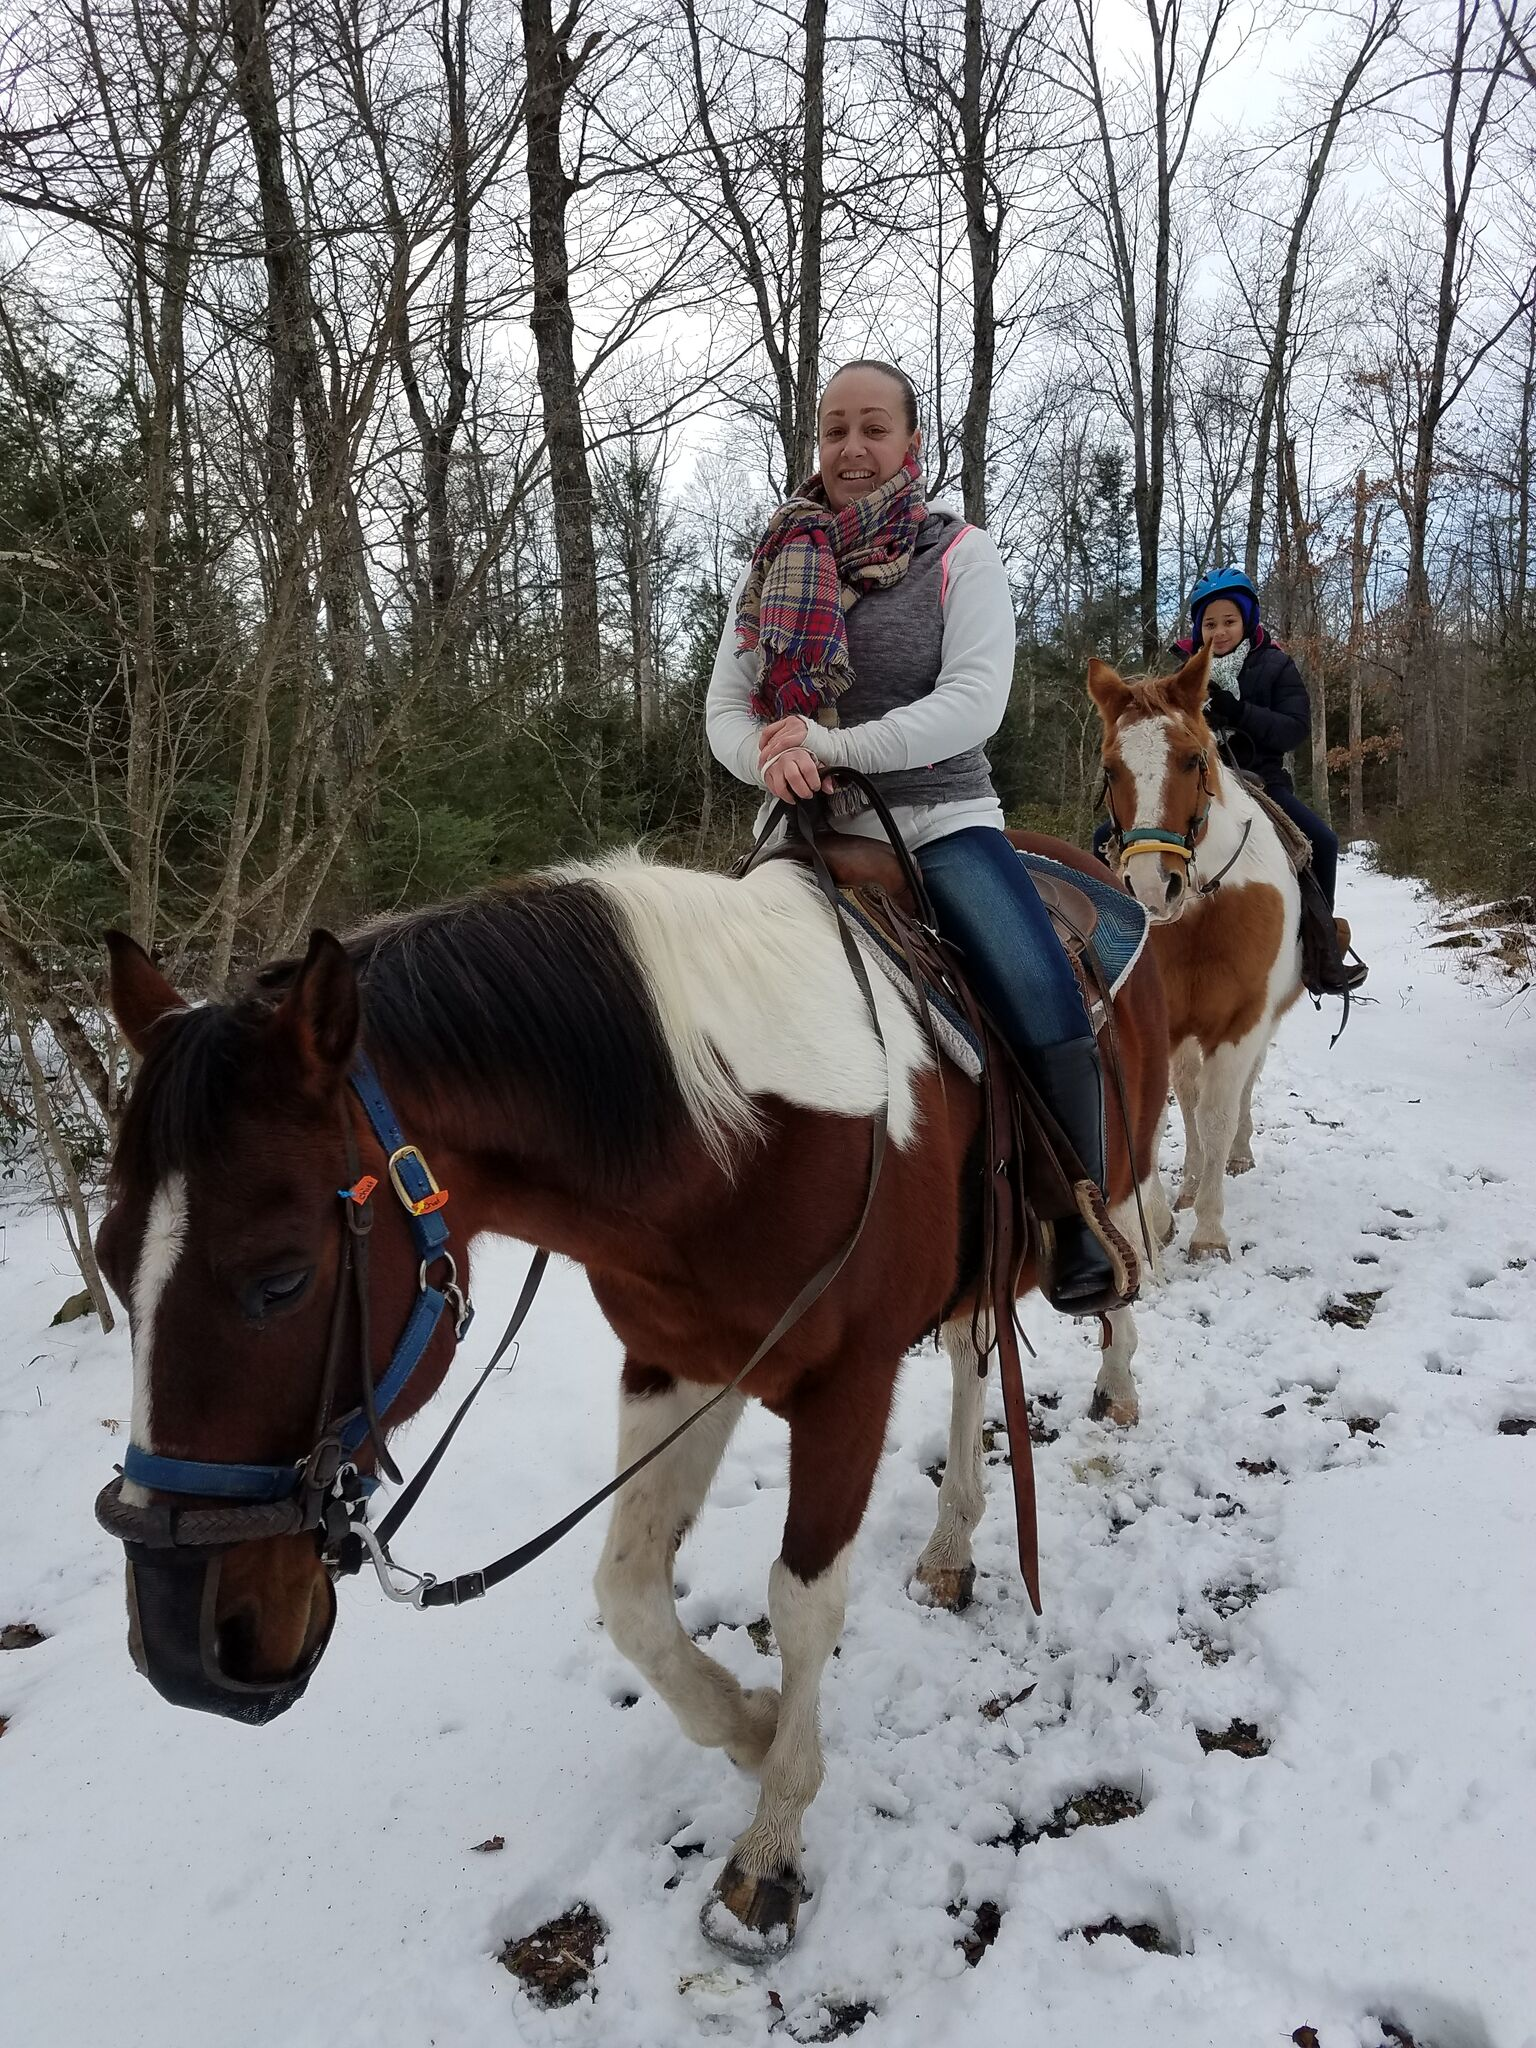 A woman horseback riding in the snow.